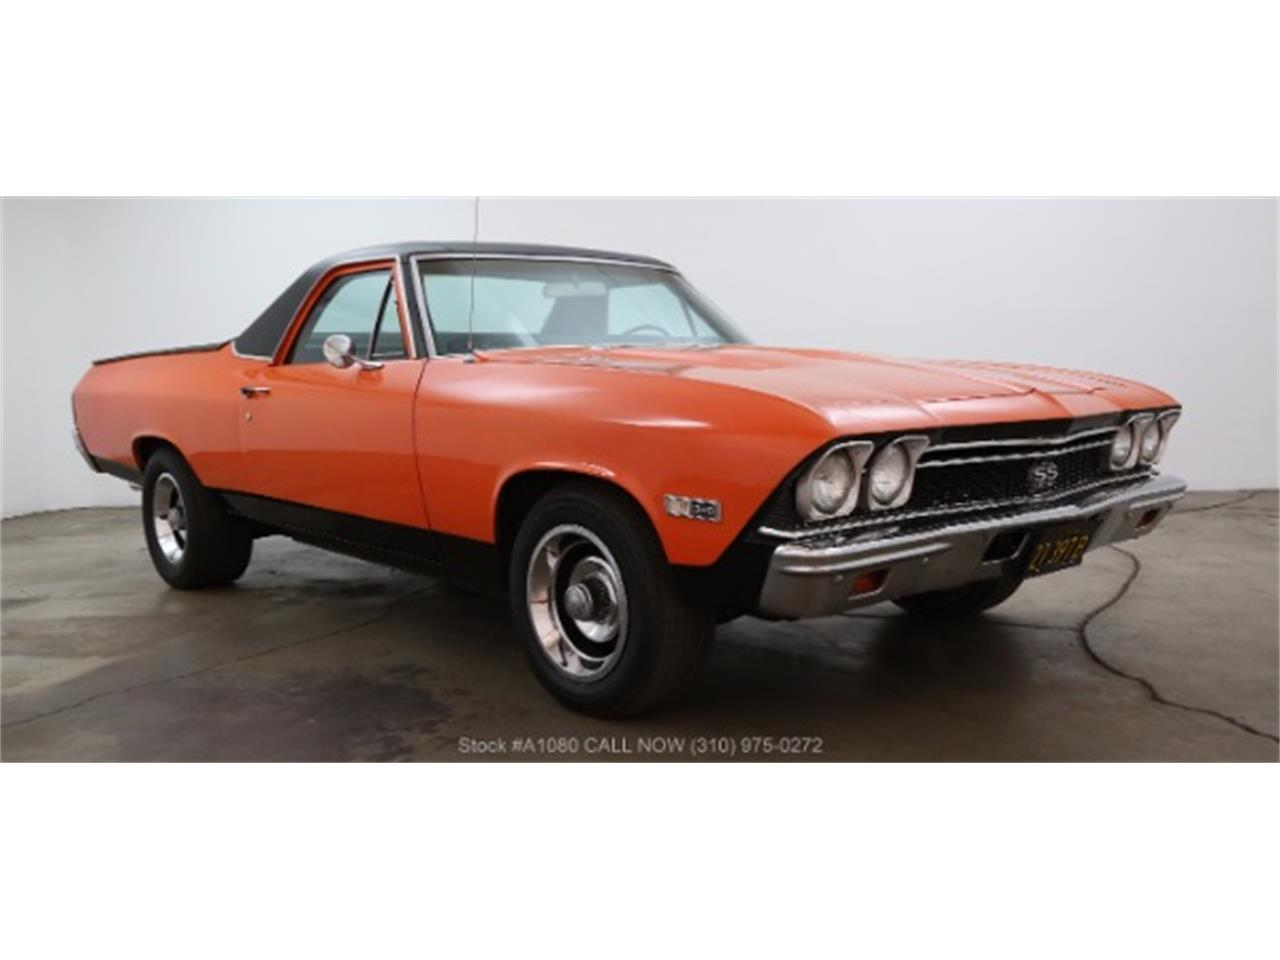 1968 Chevrolet El Camino For Sale Cc 1014422 Chevy Large Picture Of 68 Lqqe